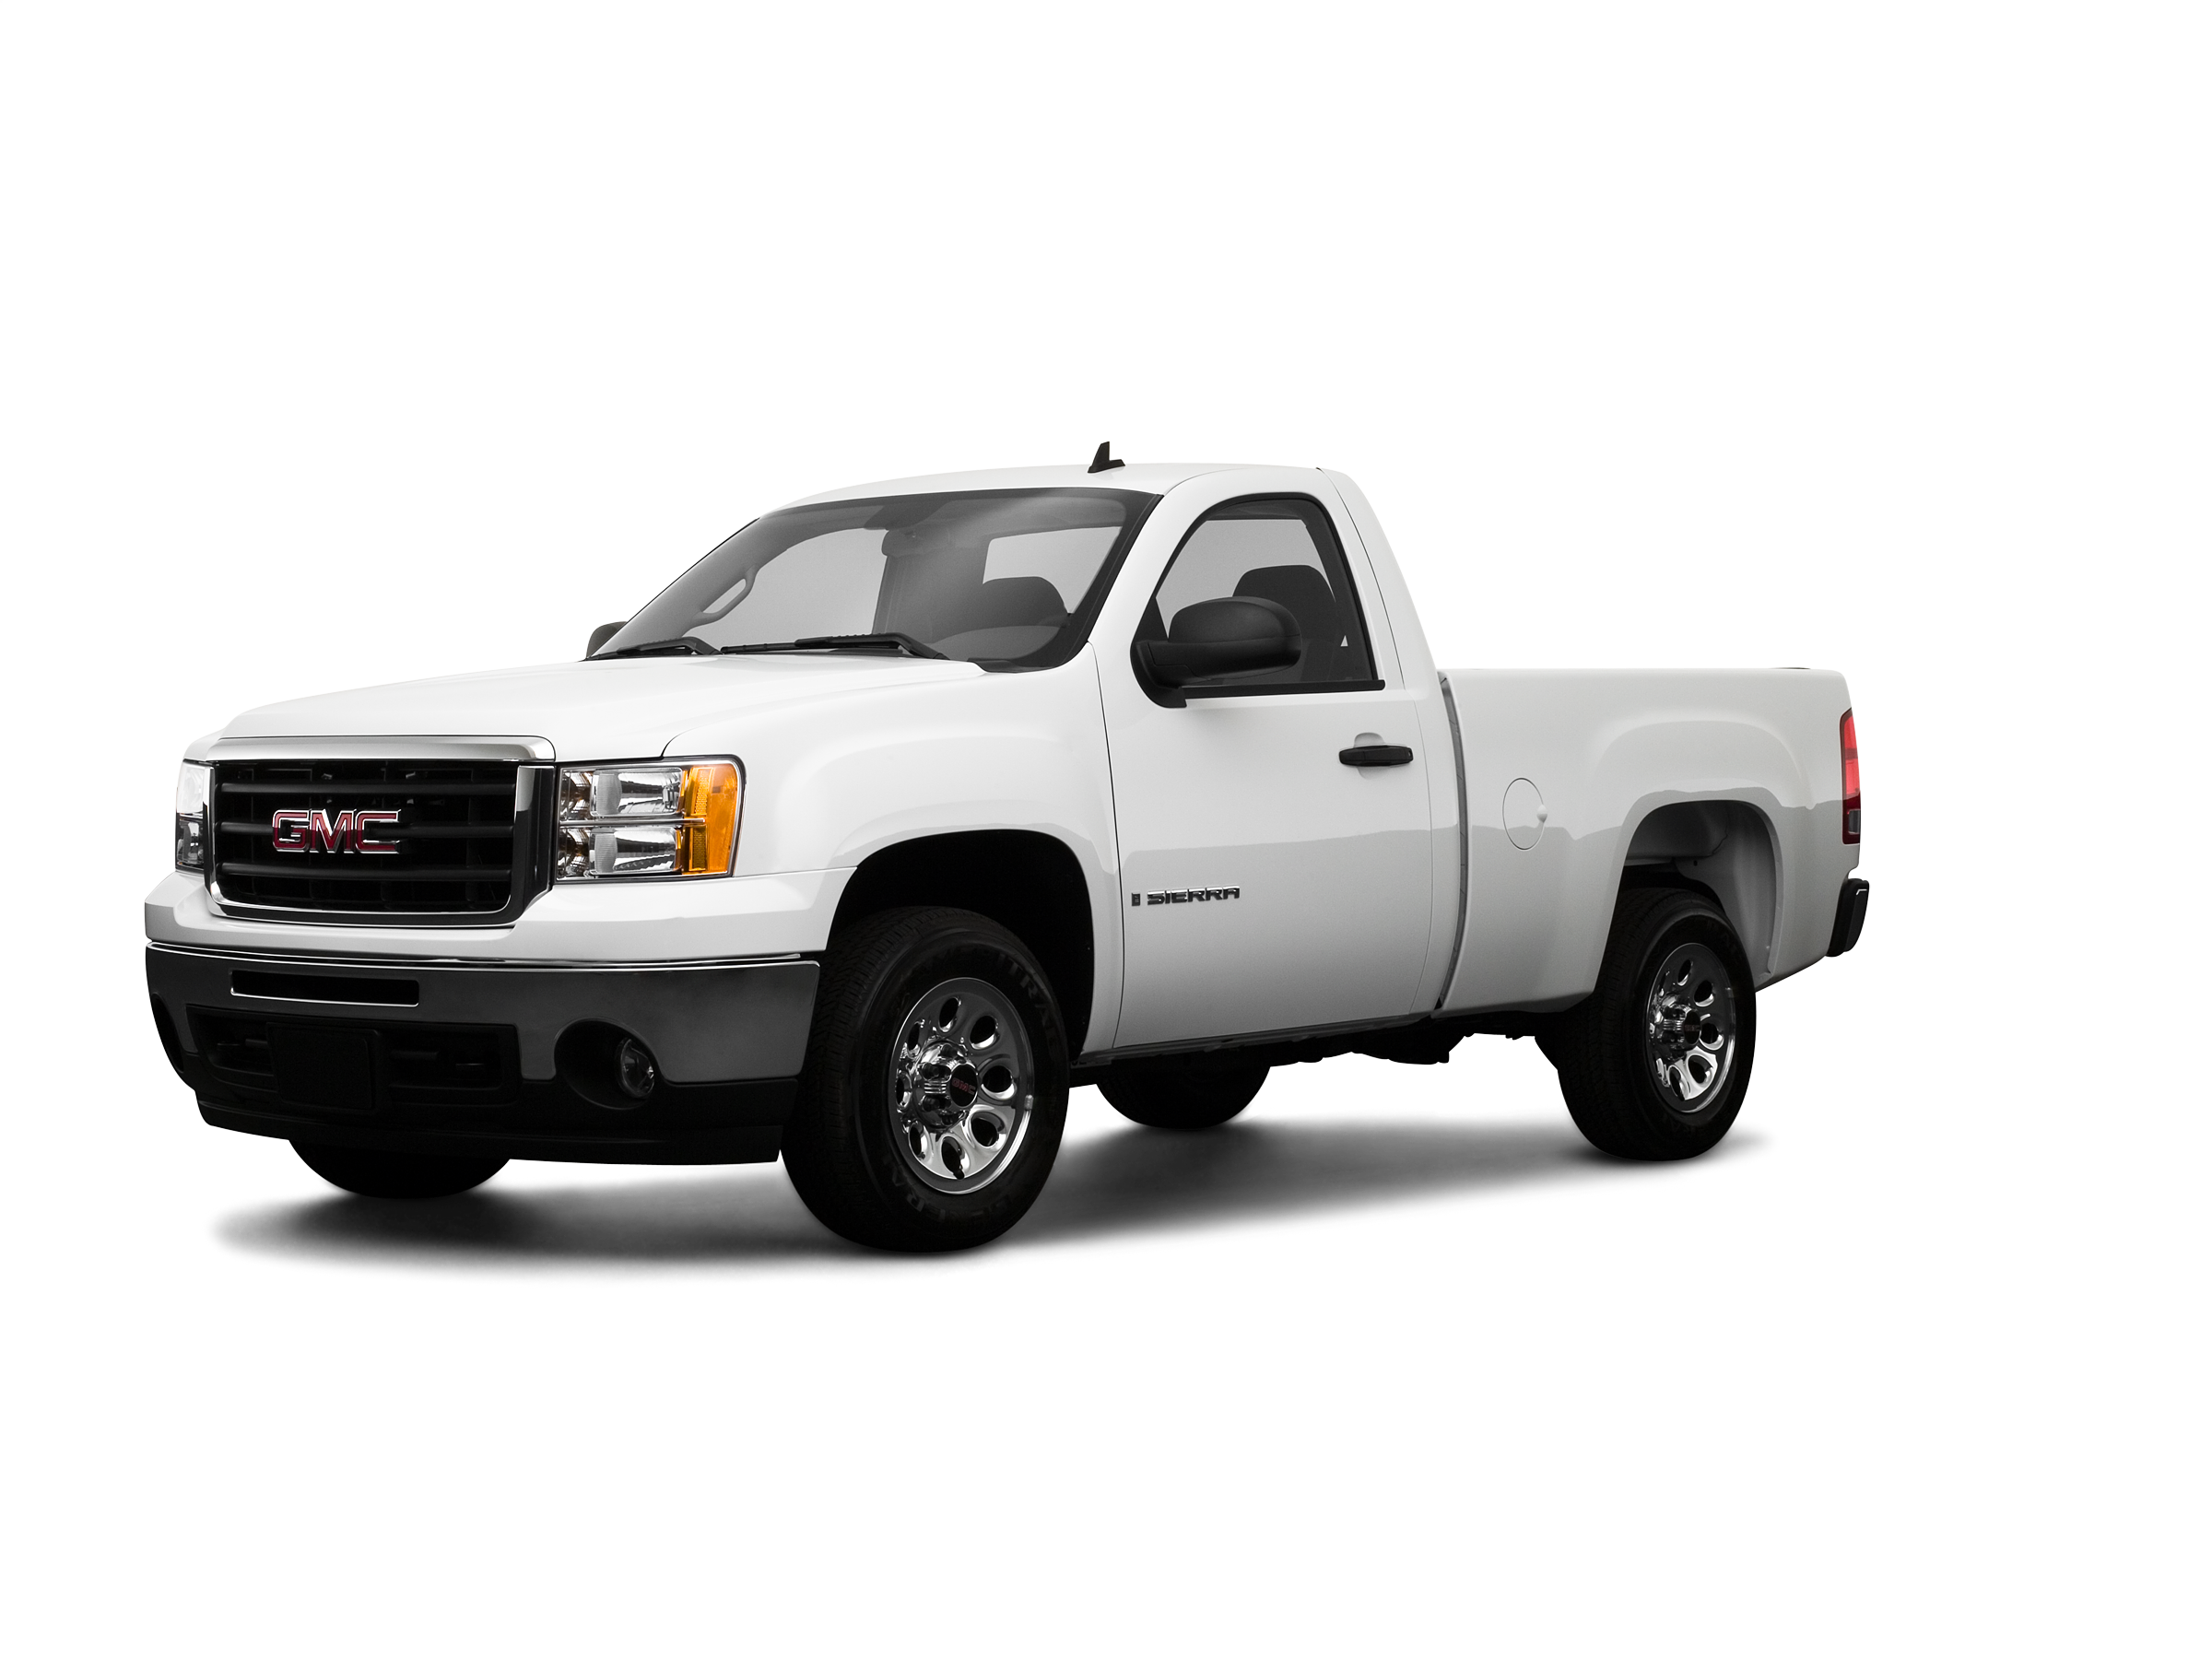 2009 Gmc Sierra 1500 Values Cars For Sale Kelley Blue Book